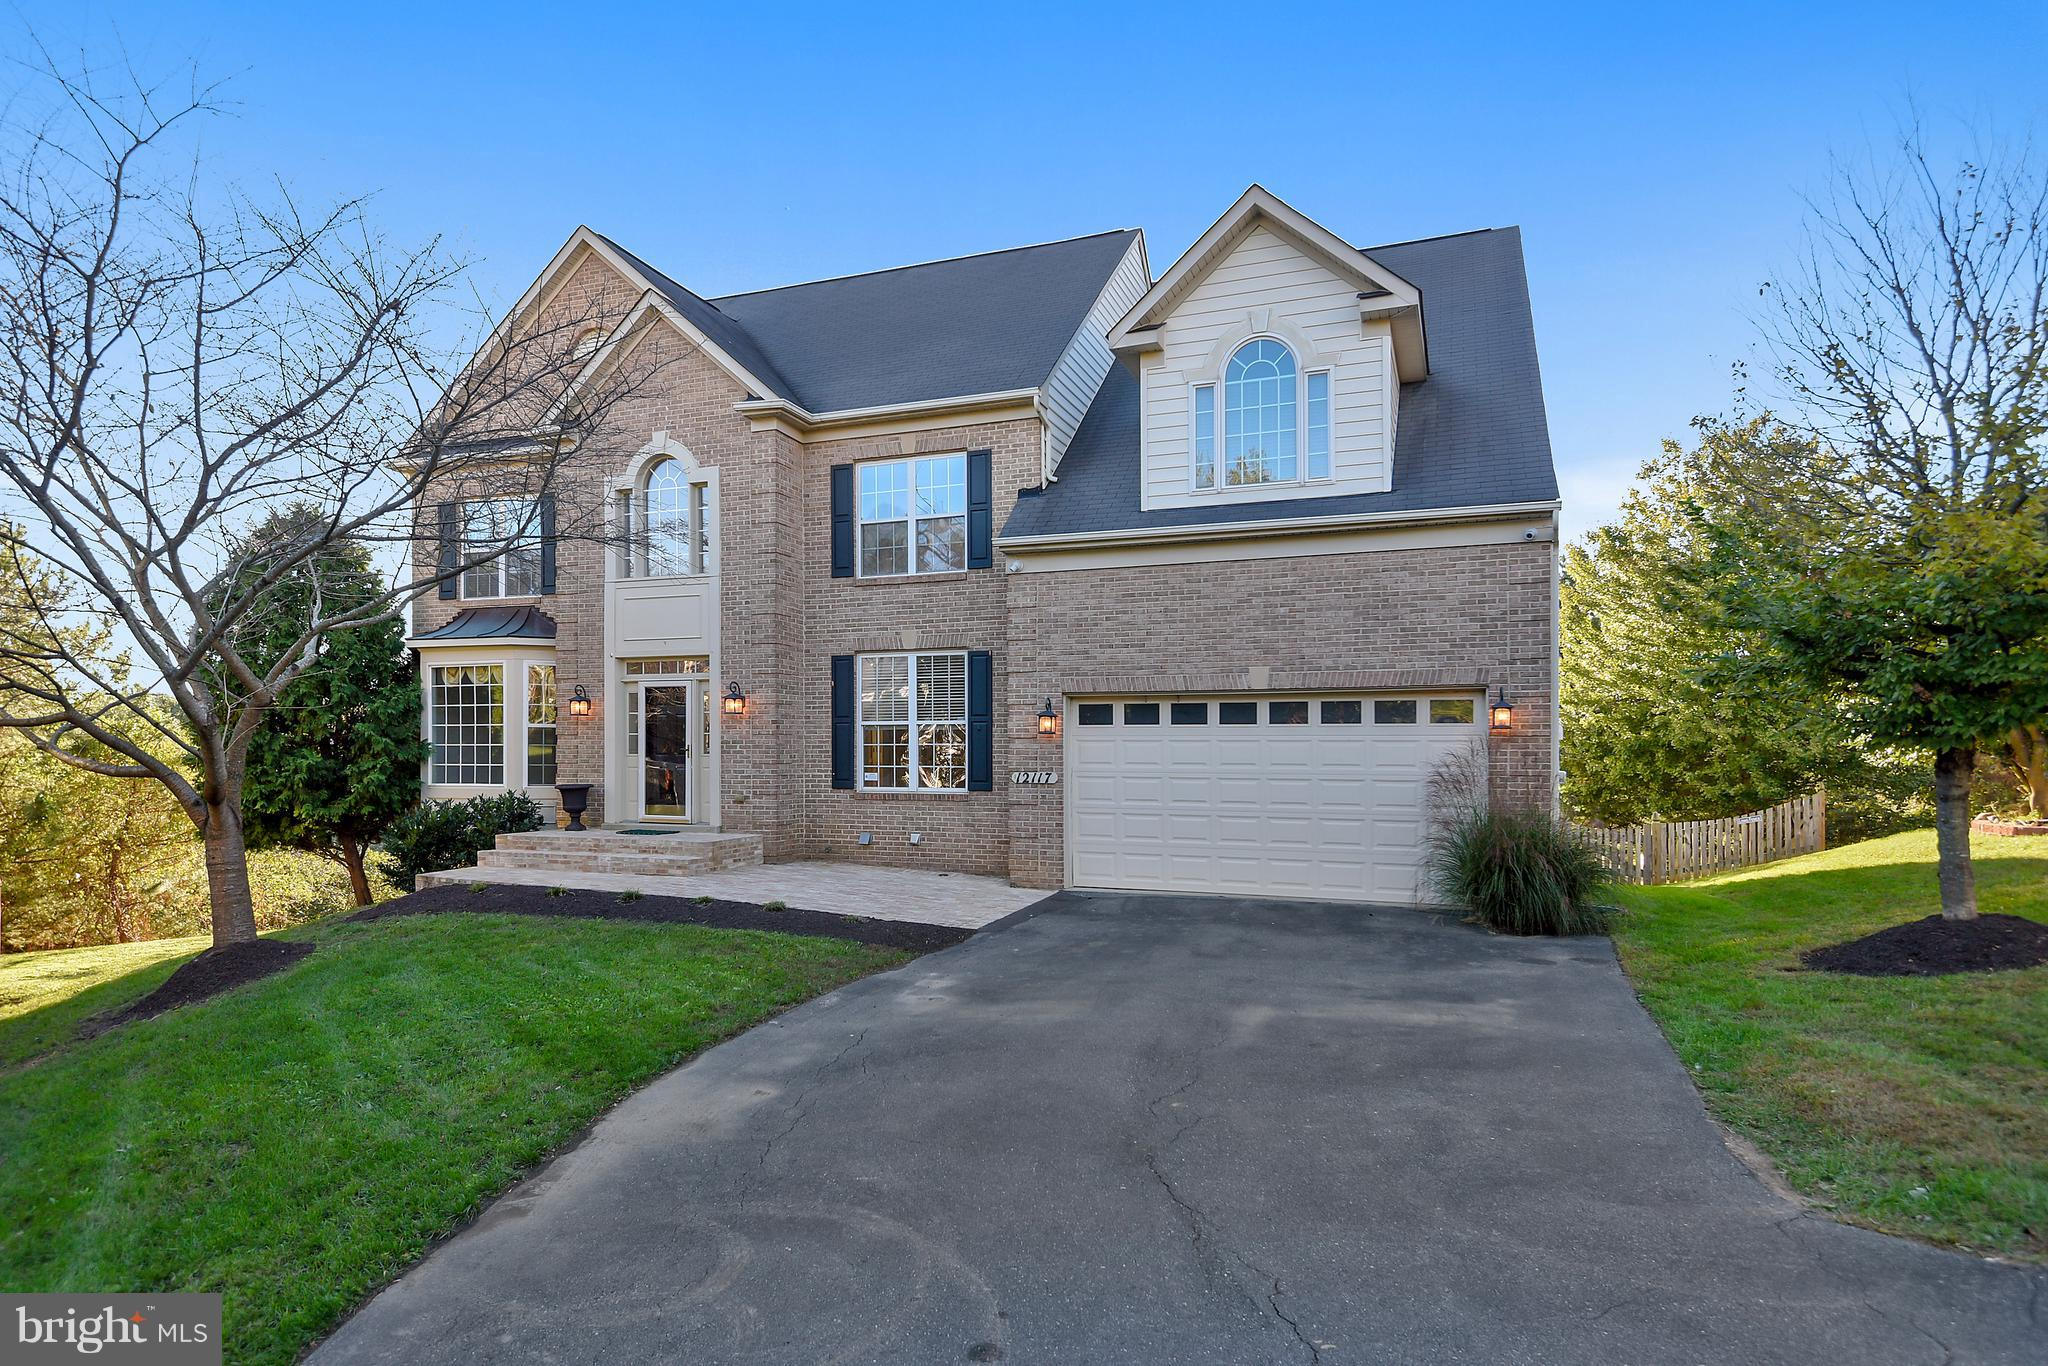 12117 RED ADMIRAL WAY, GERMANTOWN, MD 20876